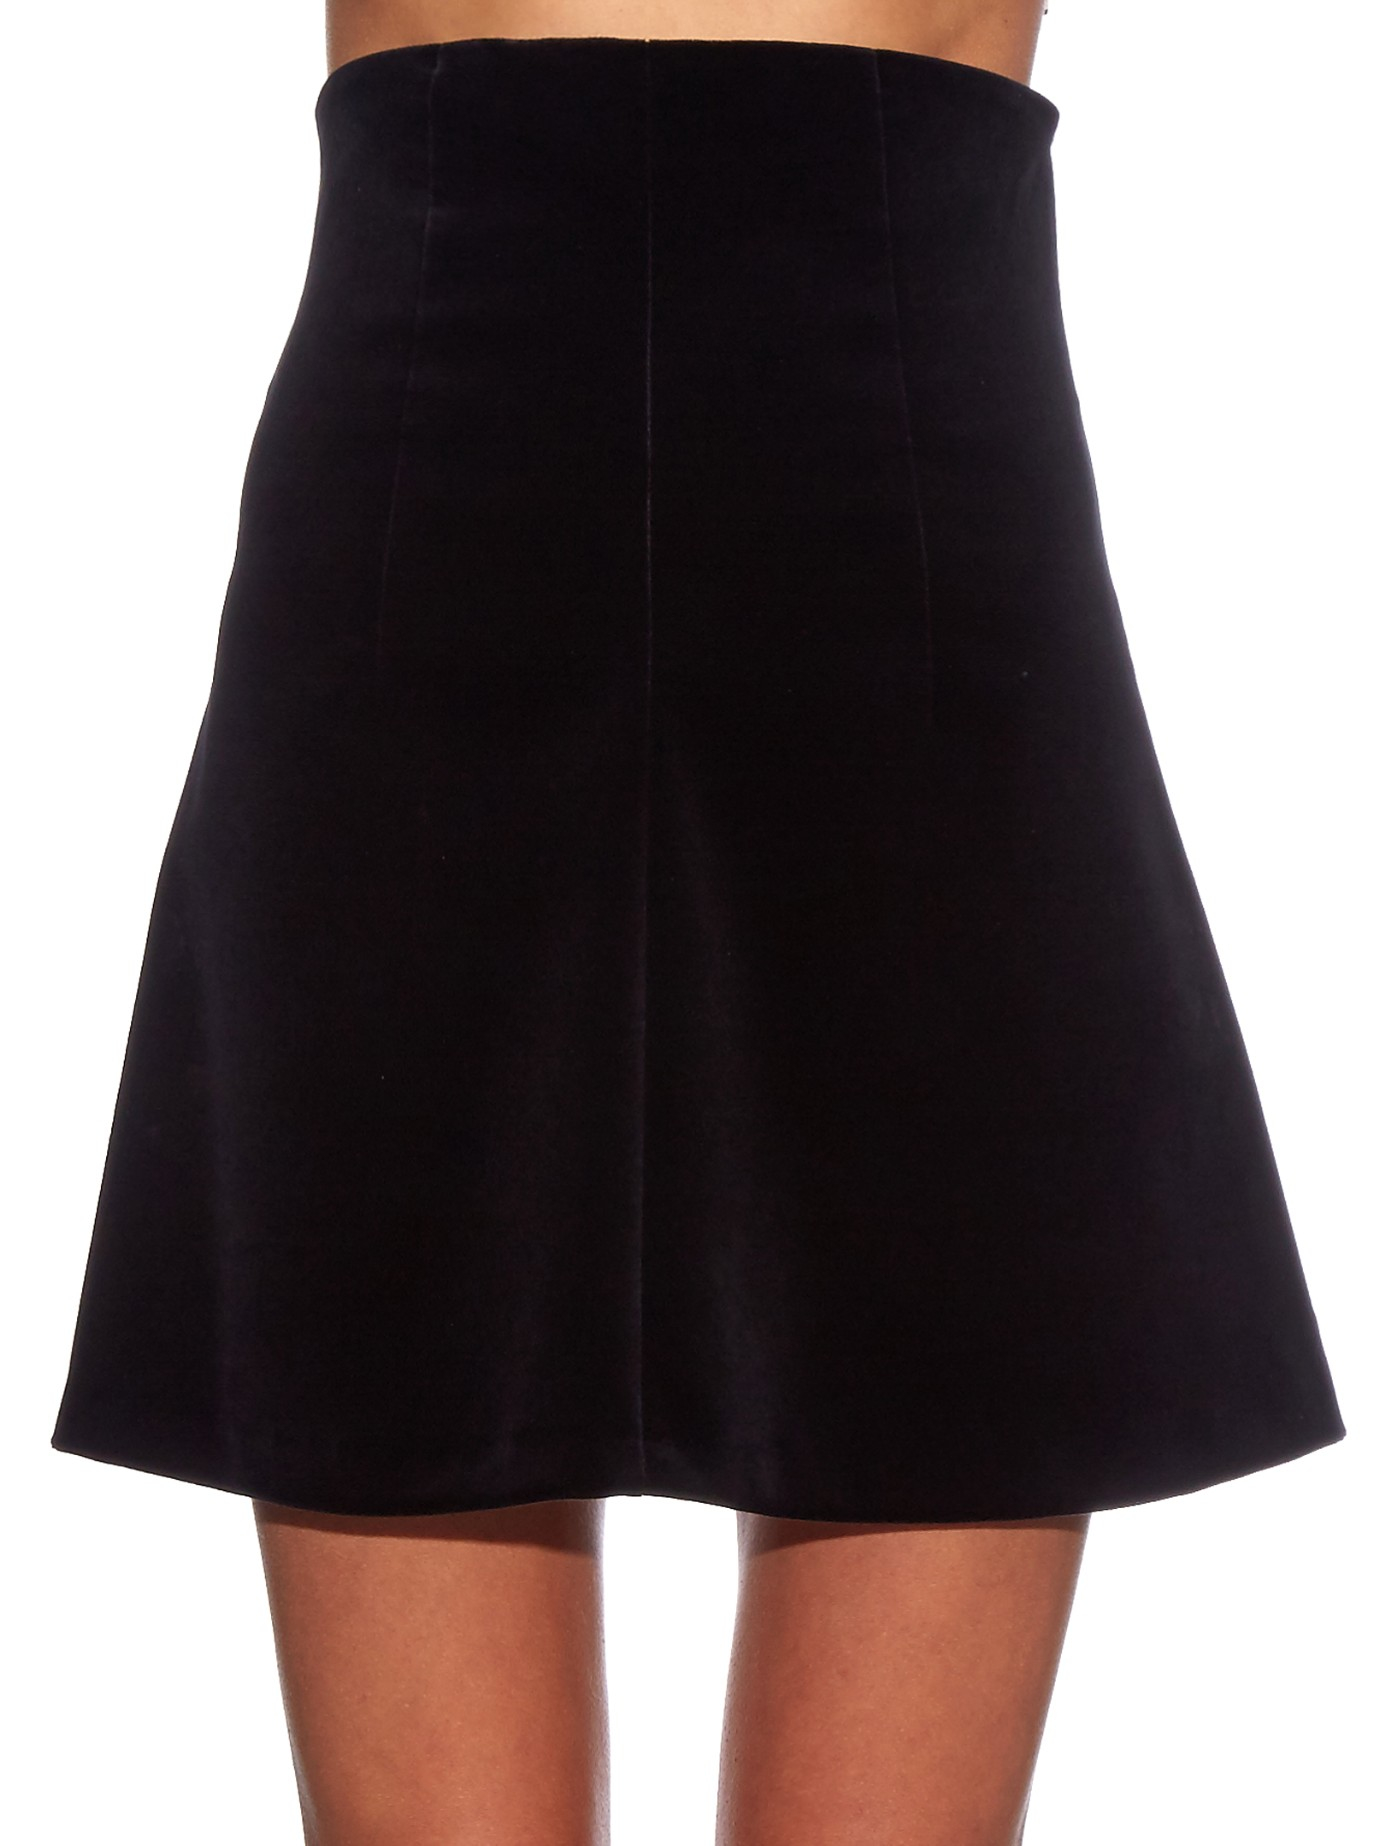 FREE SHIPPING AVAILABLE! Shop thrushop-9b4y6tny.ga and save on Black Skirts.